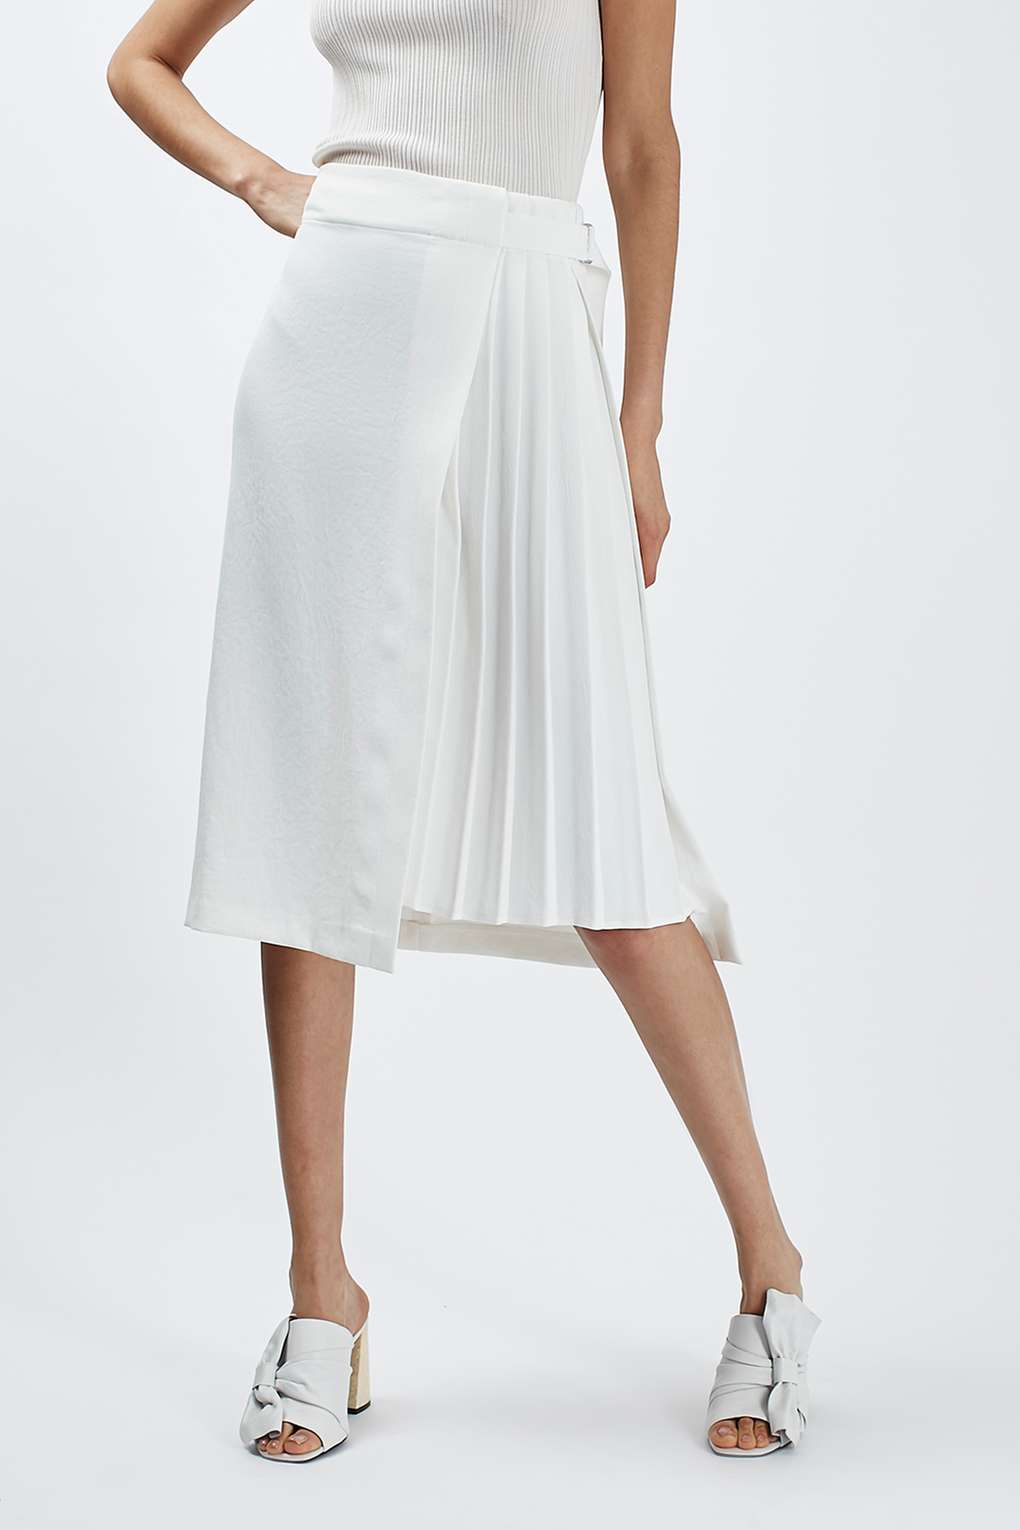 TOPSHOP PLEATED DETAIL MIDI SKIRT 2